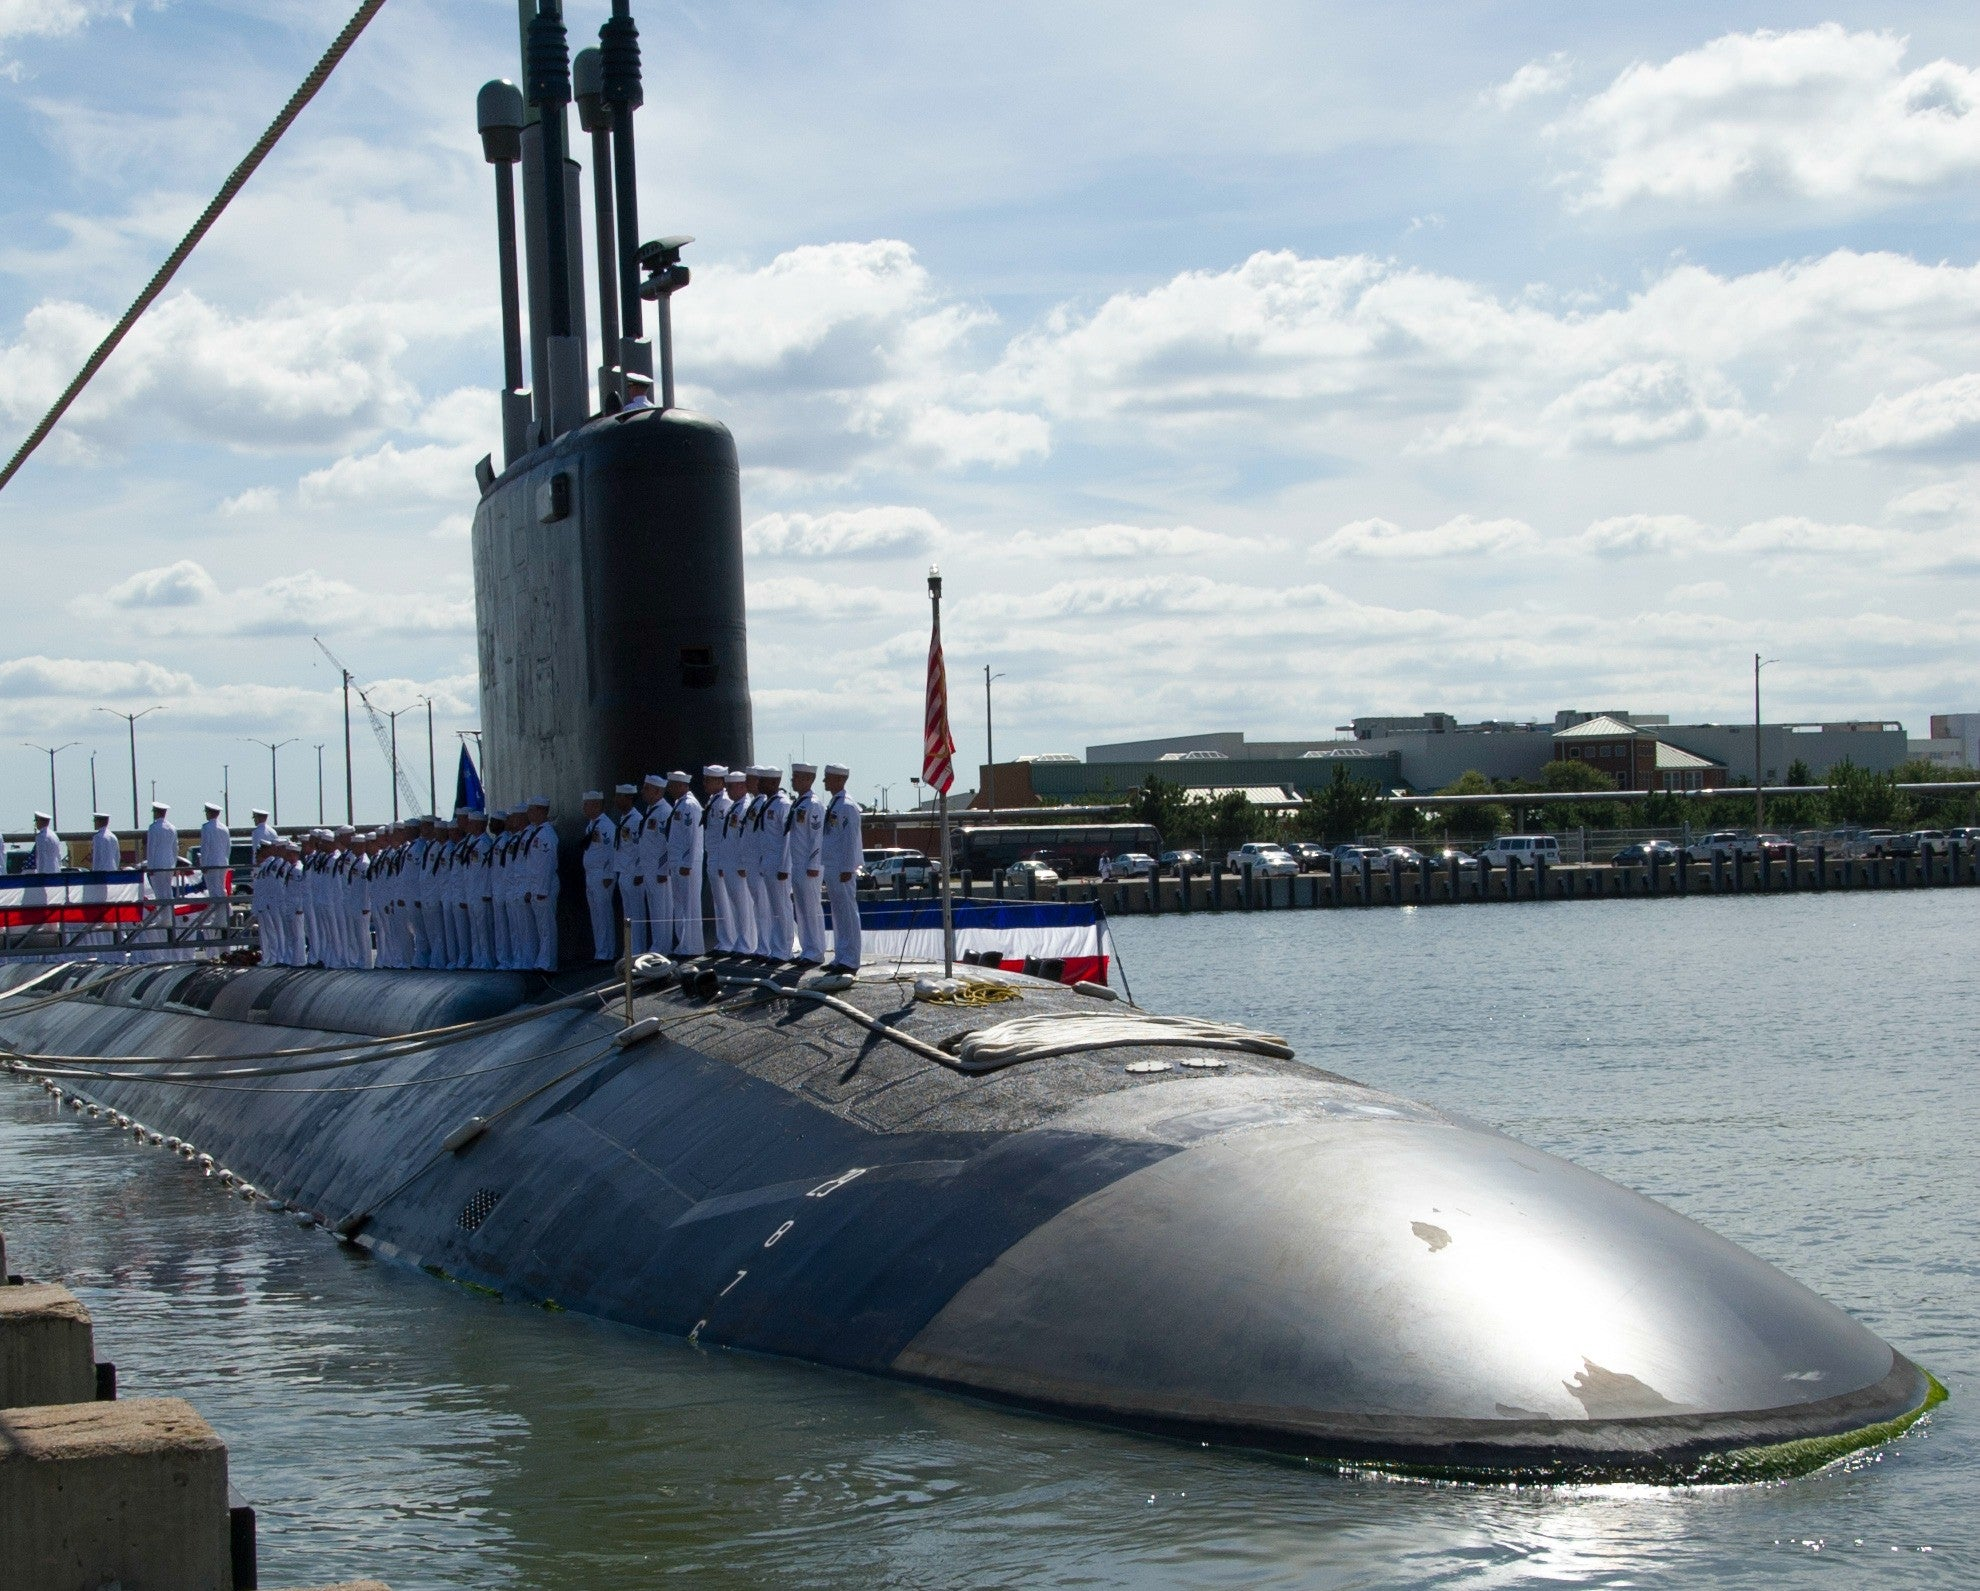 "Submarine USS Minnesota SSN-783 Norfolk, VA September 7, 2013 - 8 x 10"" Photograph"